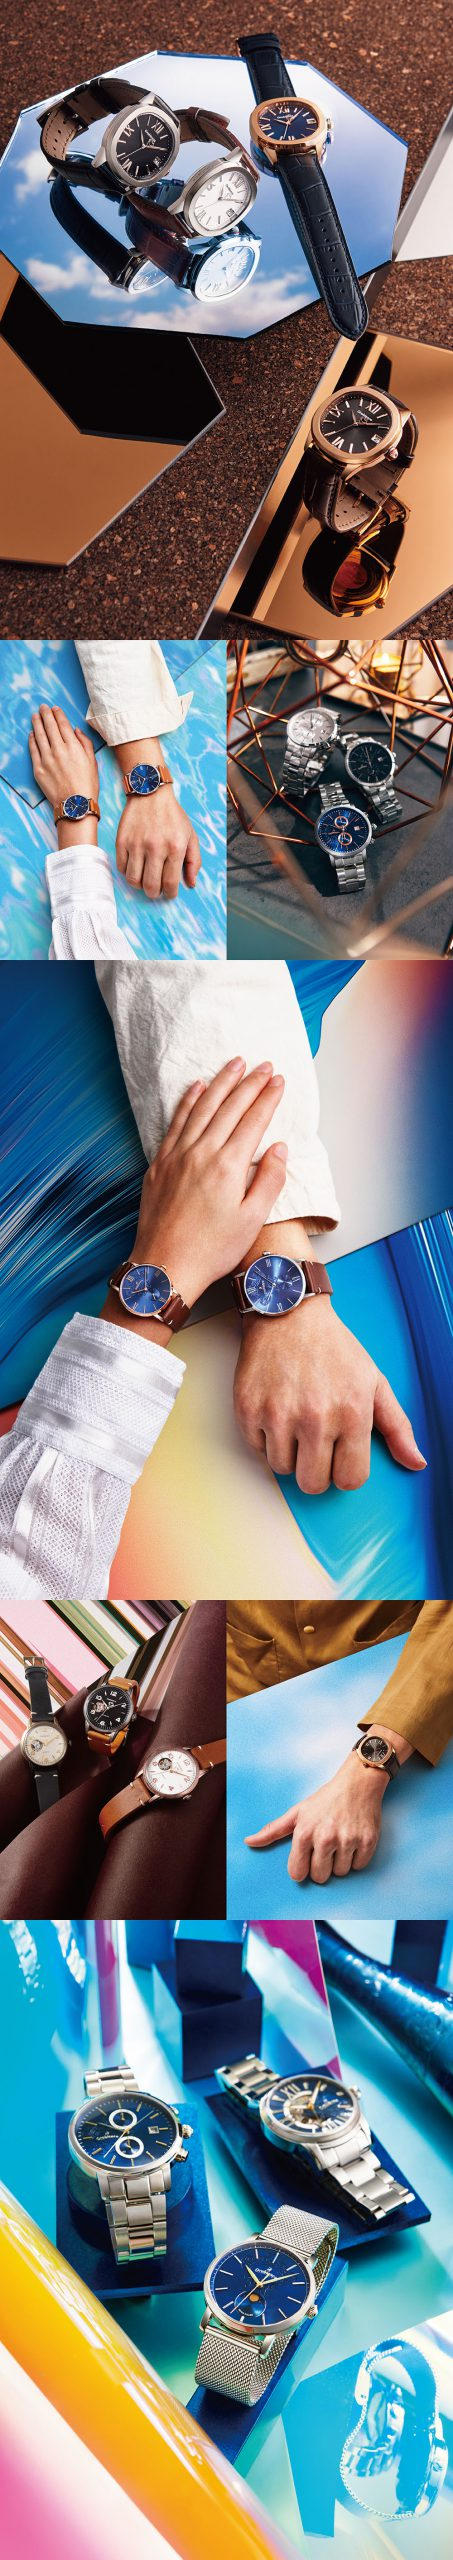 OROBIANCO / 2020 SPRING&SUMMER WATCH COLLECTION